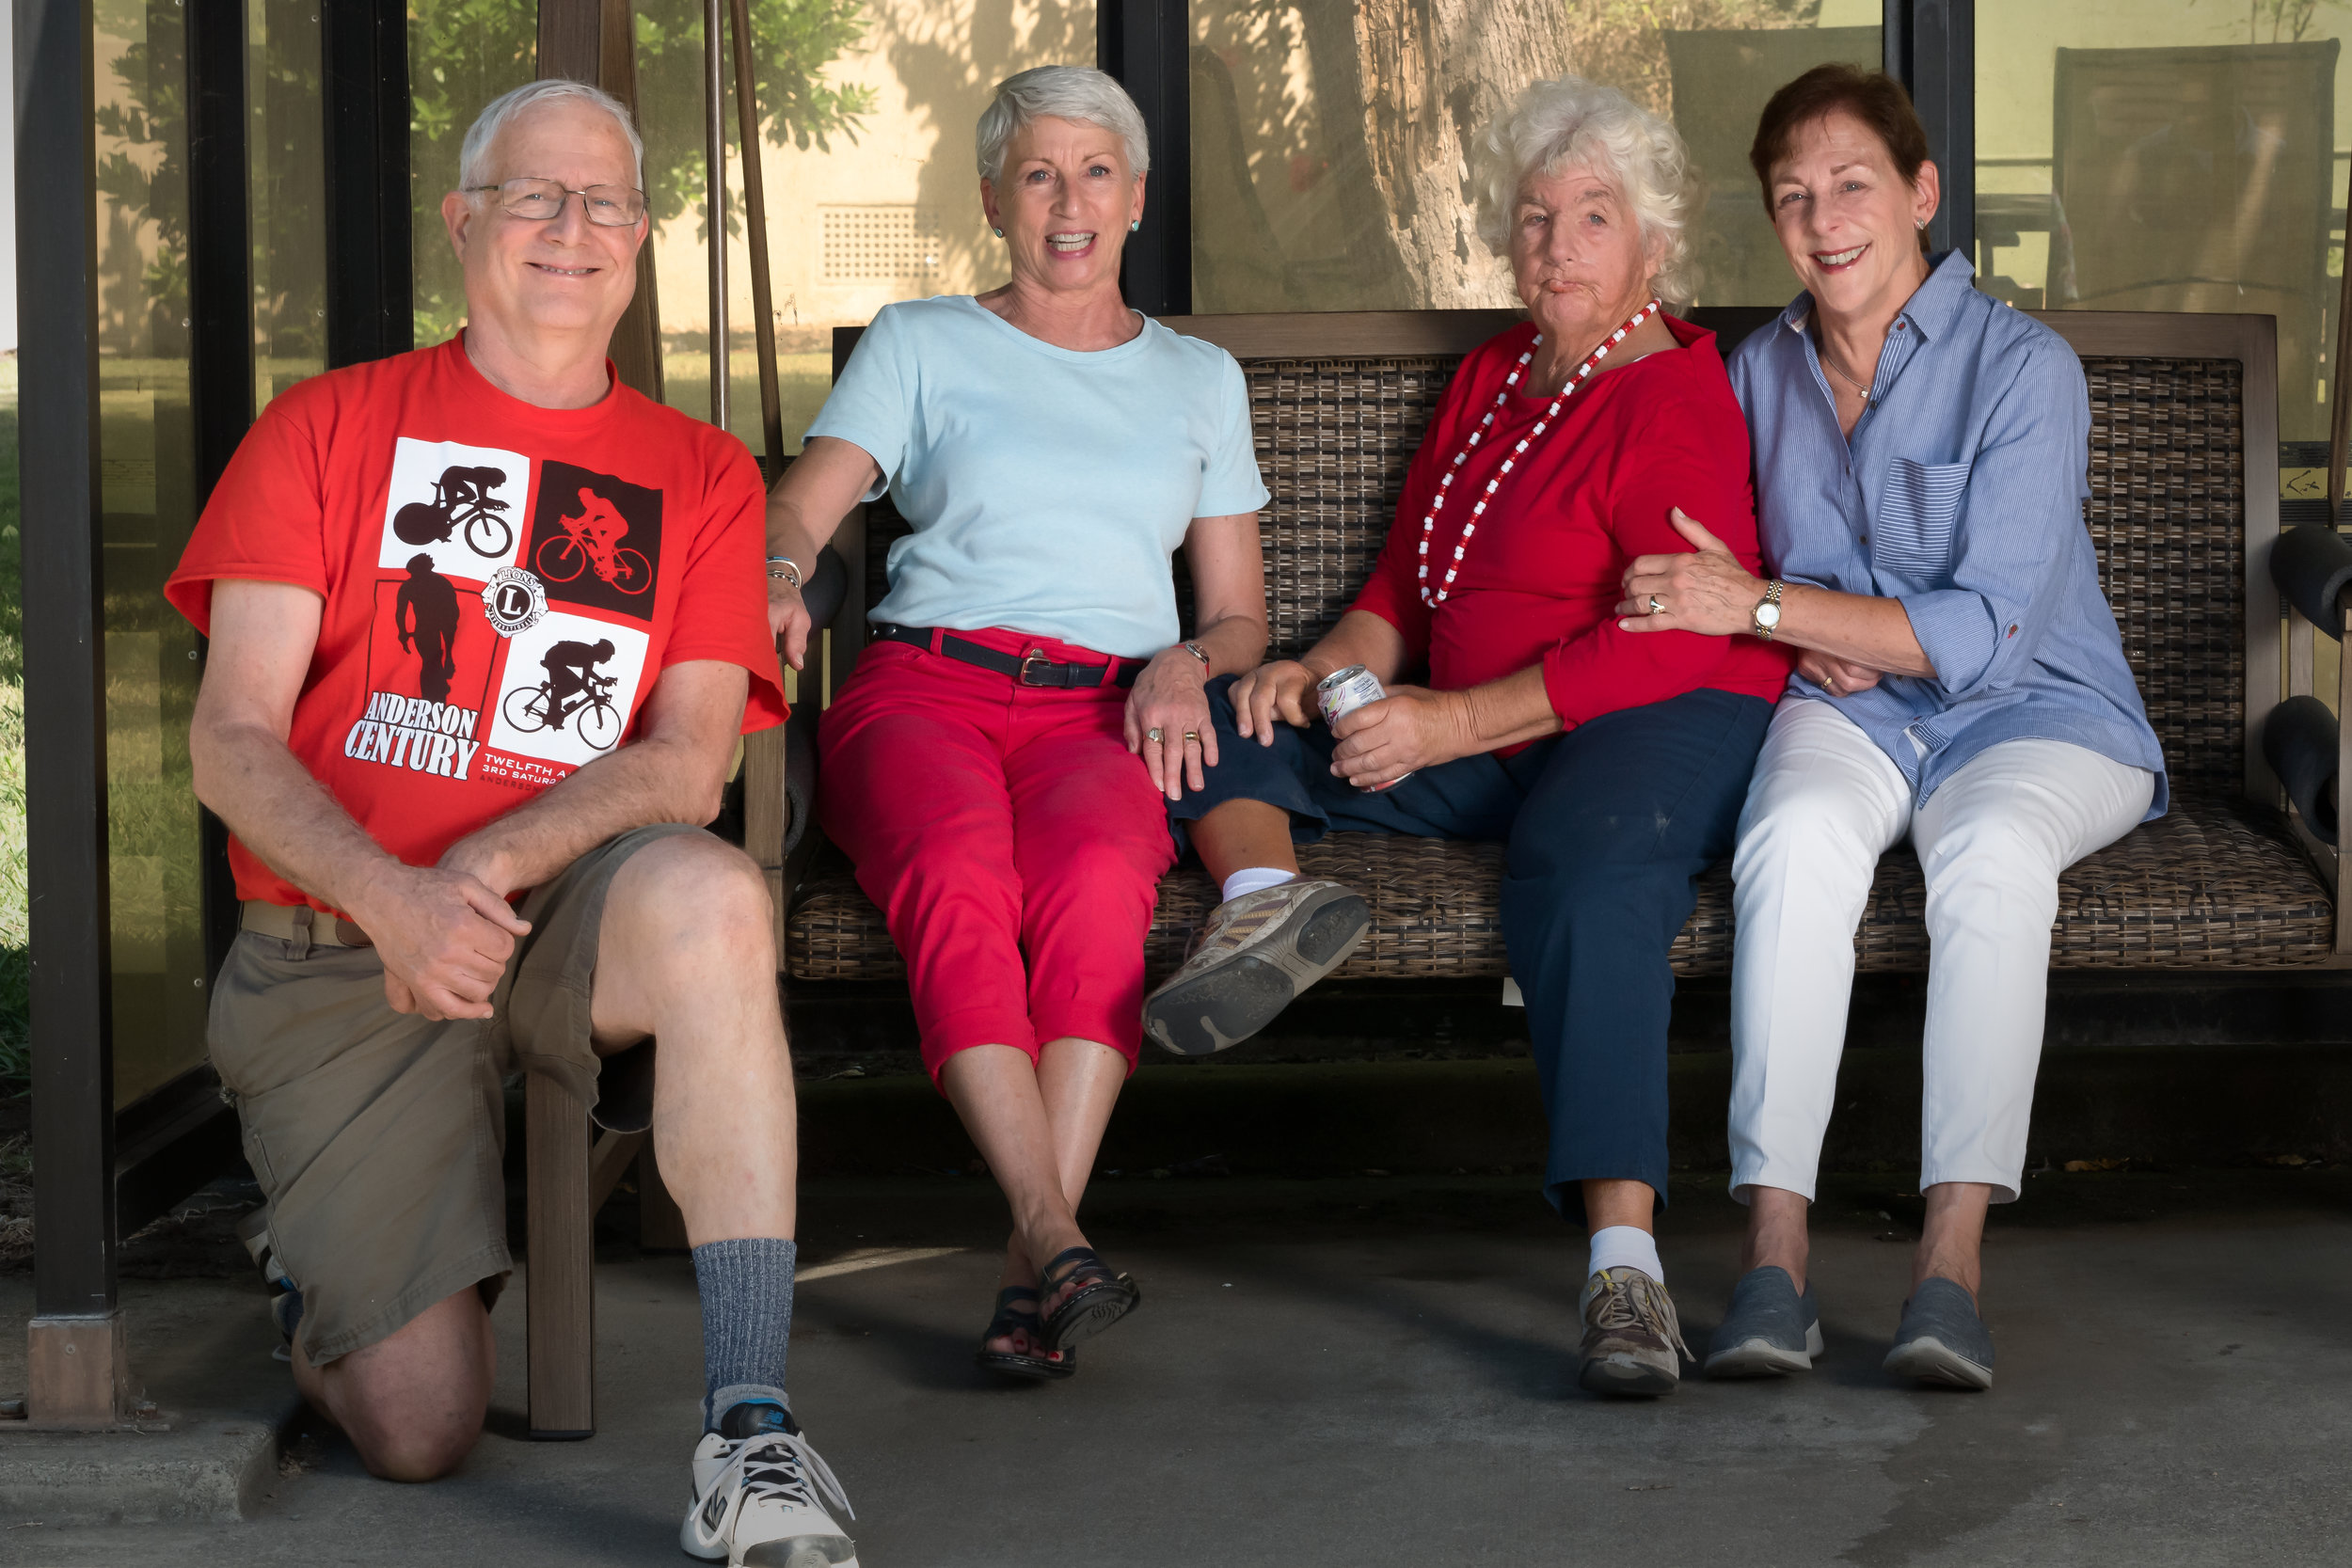 Barbara Volken and her brother and sisters Thomas, Diane and Cathy